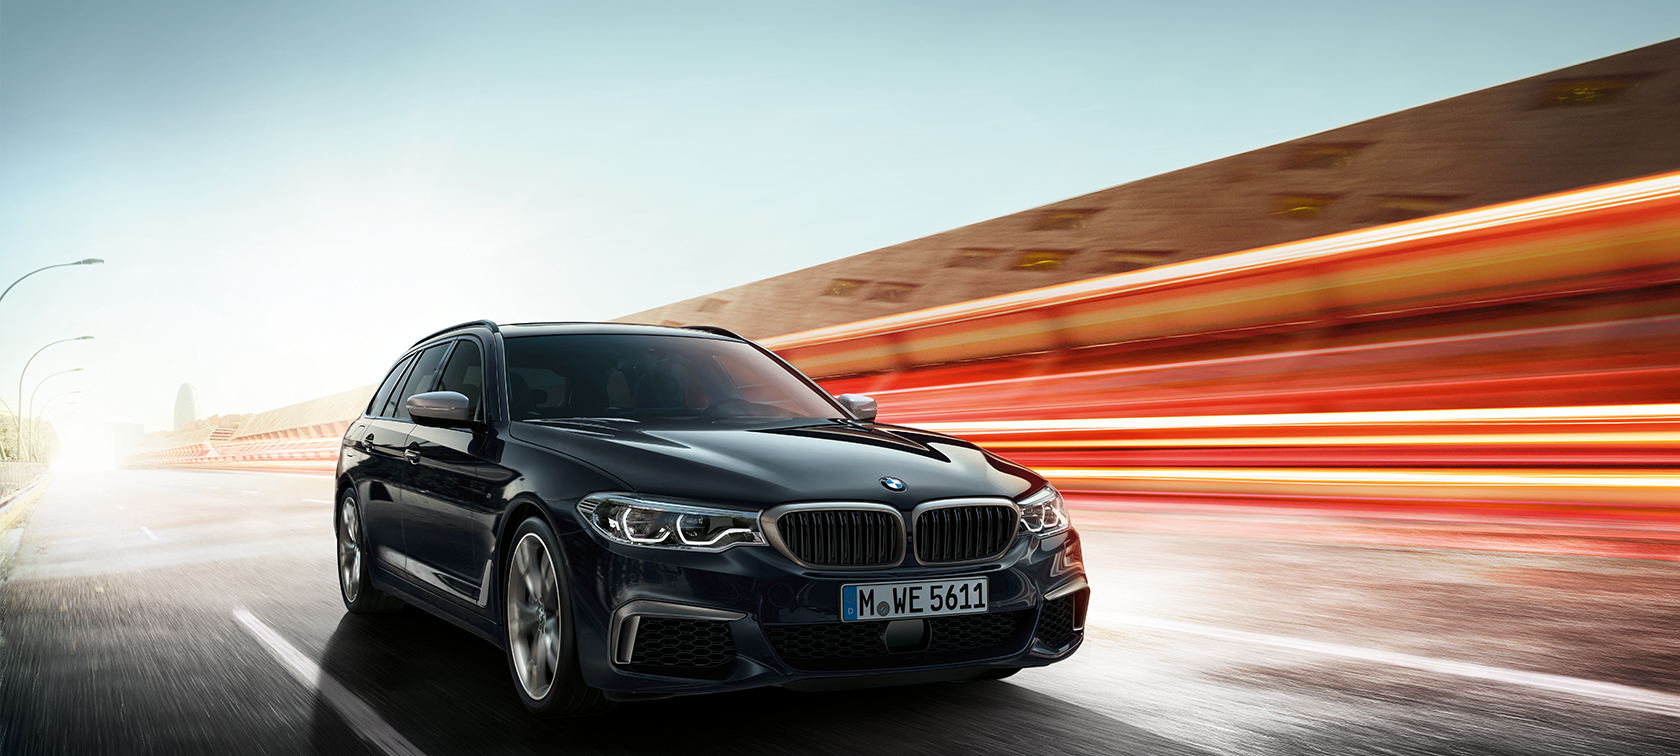 BMW M550d xDrive Touring new G31 Azurite Black metallic three-quarter front view